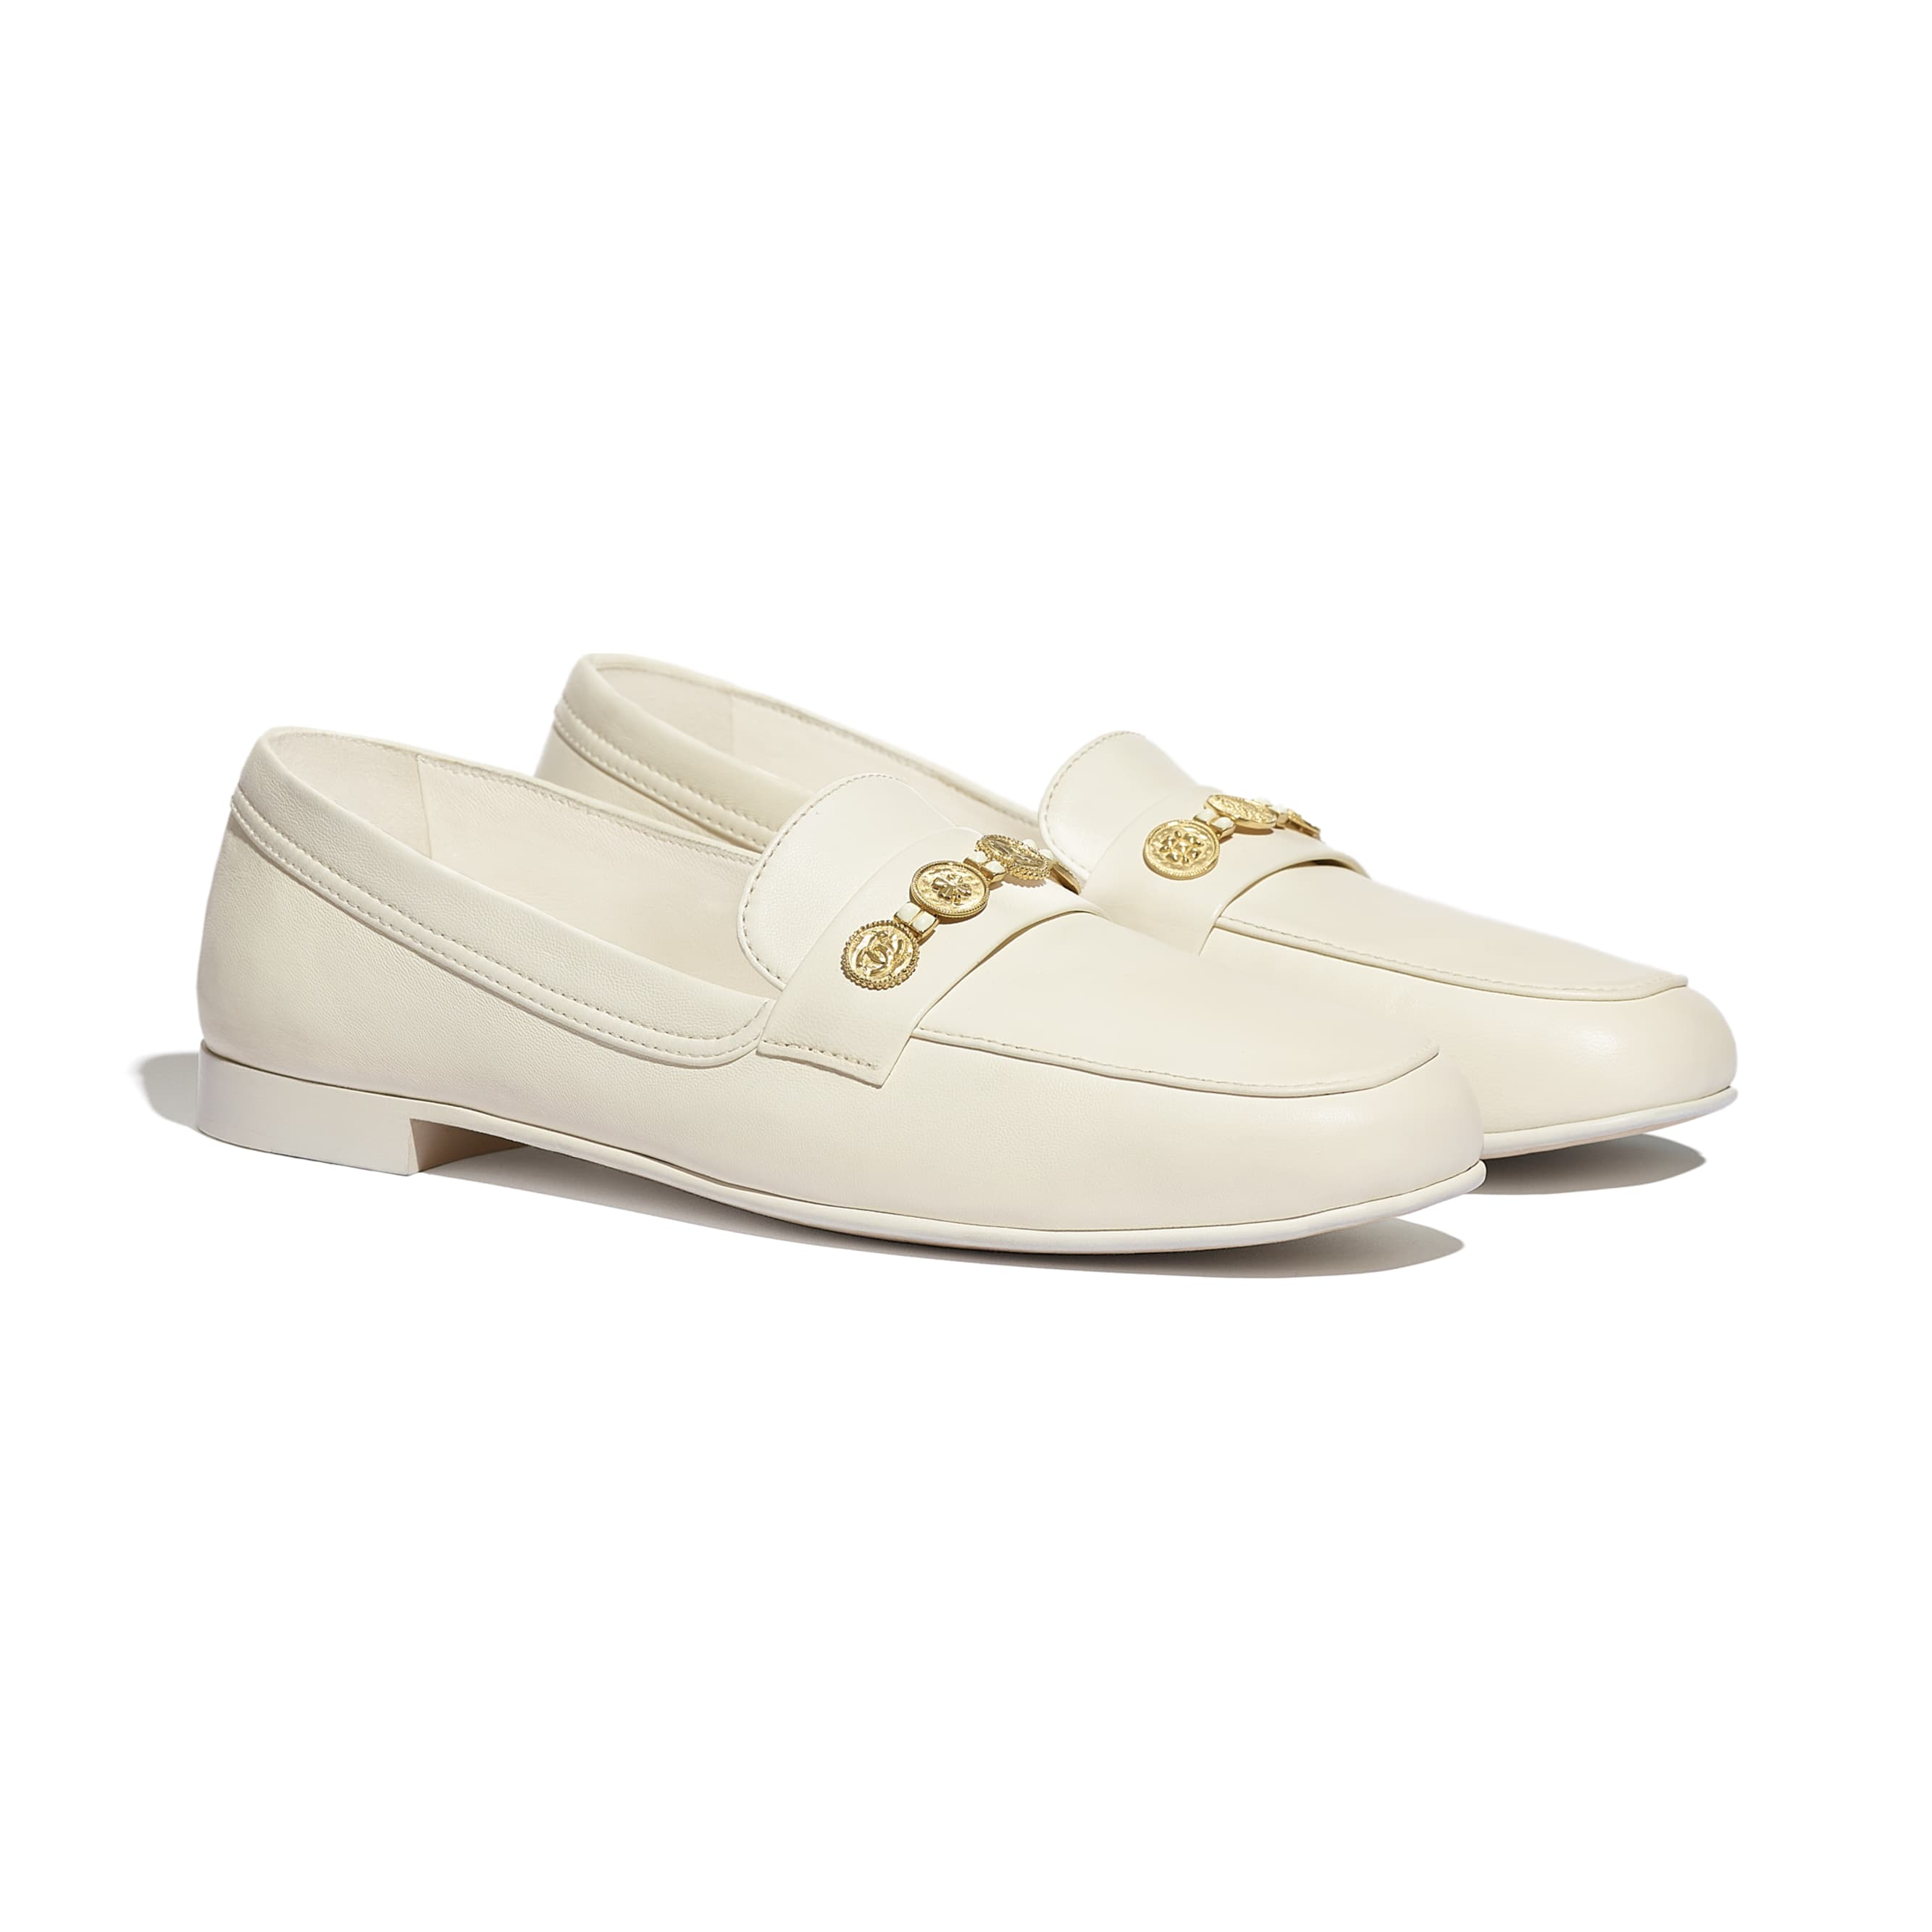 Loafers - Ivory - Lambskin - CHANEL - Alternative view - see standard sized version